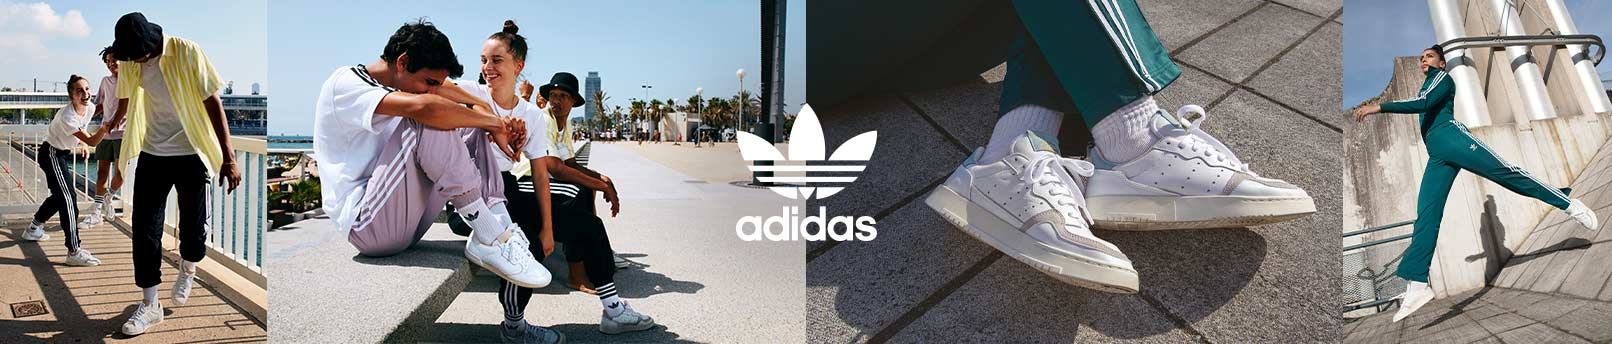 adidas Supercourt shoppen